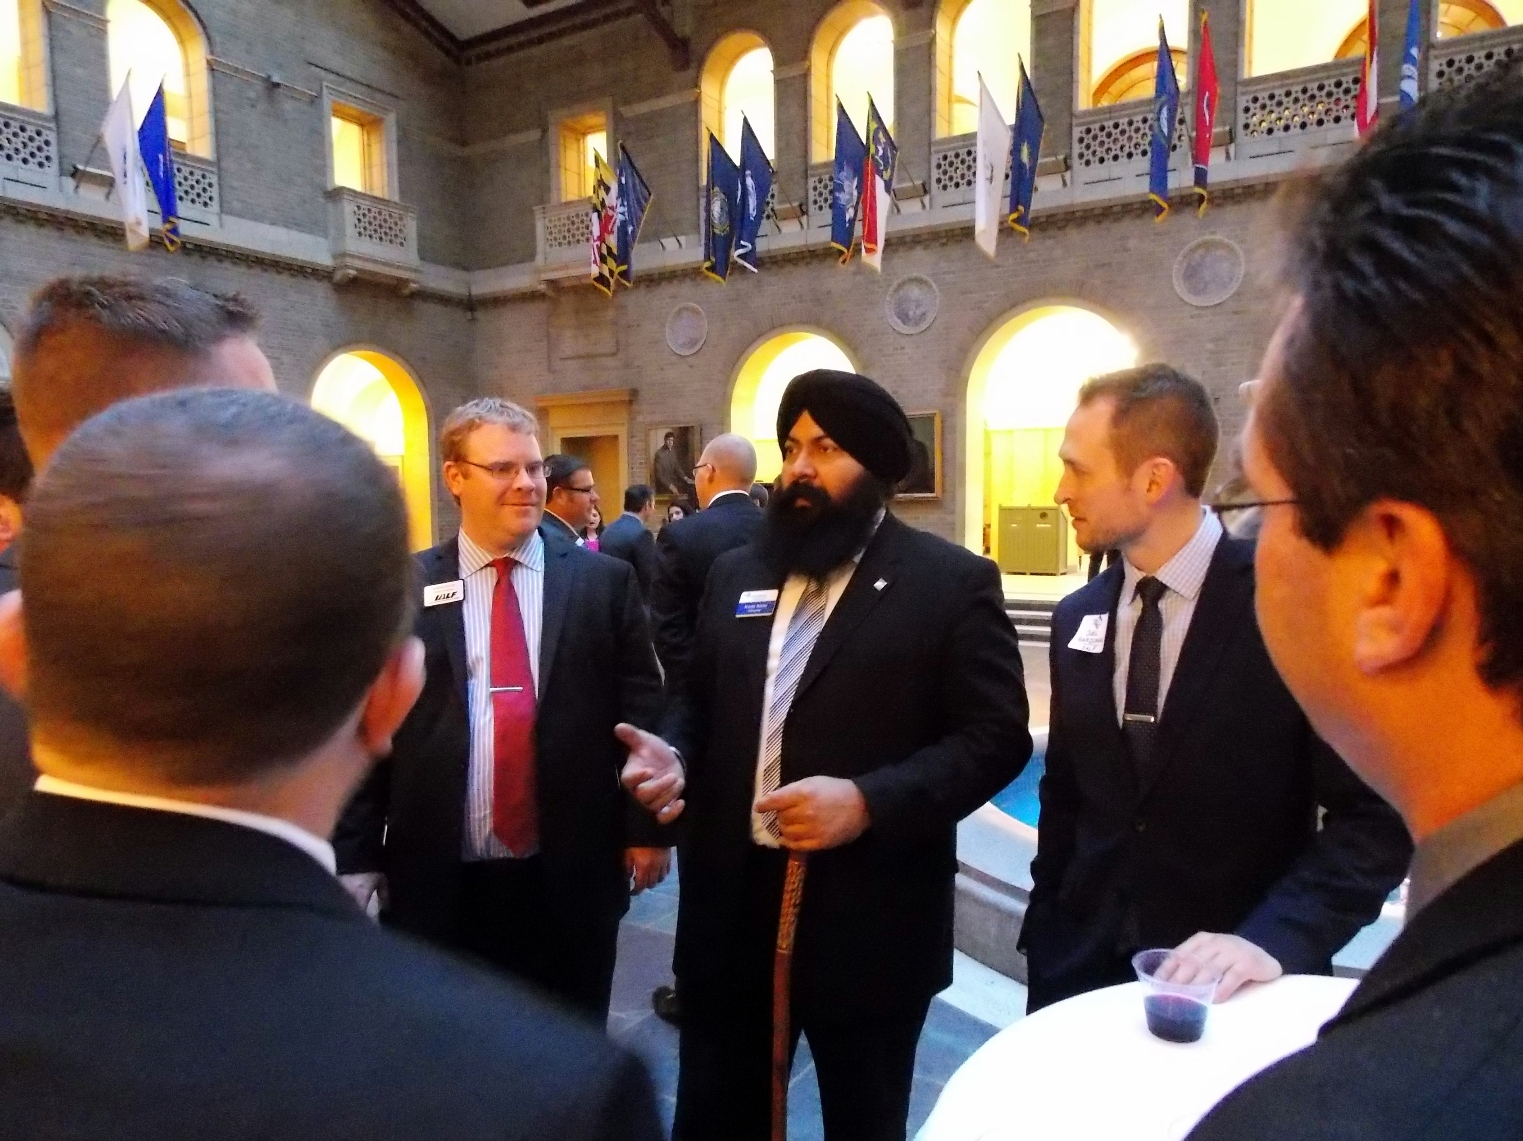 Meeting and discussing California agriculture with Karm Bains, an alum and Director of CALP.